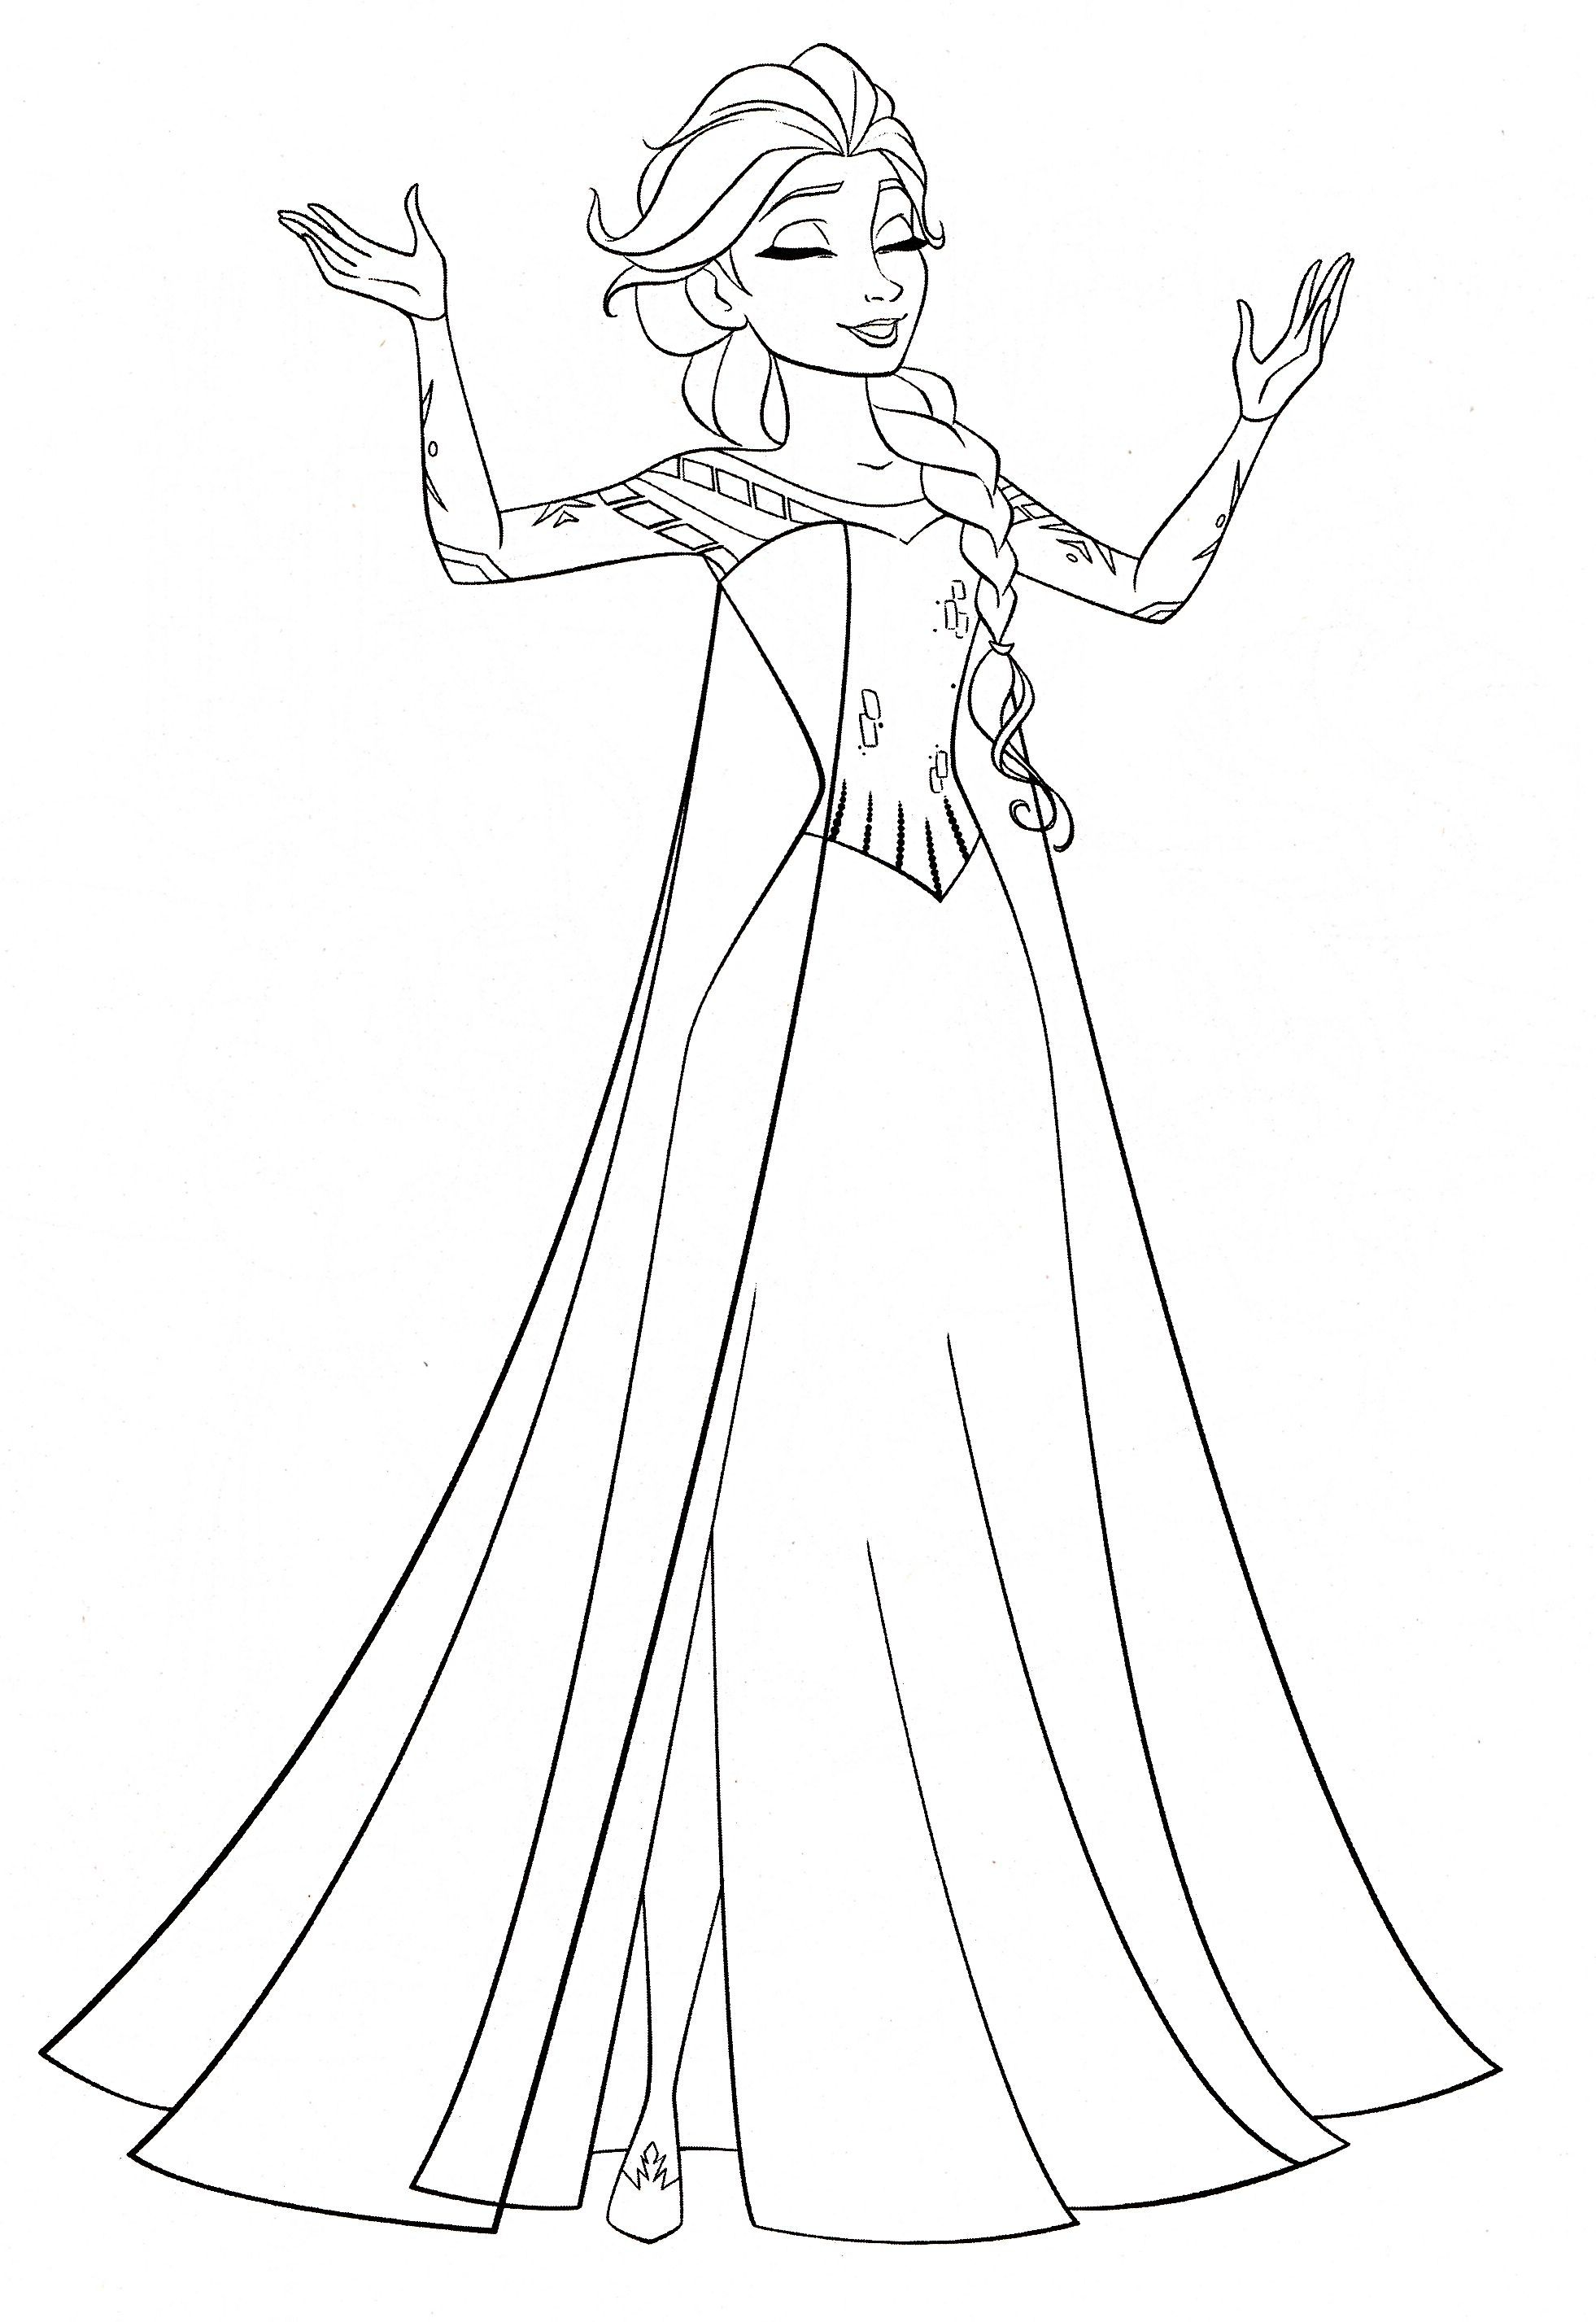 Queen Elsa Coloring Frozen Queen Elsa Coloring Pages Queen Elsa And Princess Anna Co Disney Princess Coloring Pages Frozen Coloring Pages Elsa Coloring Pages